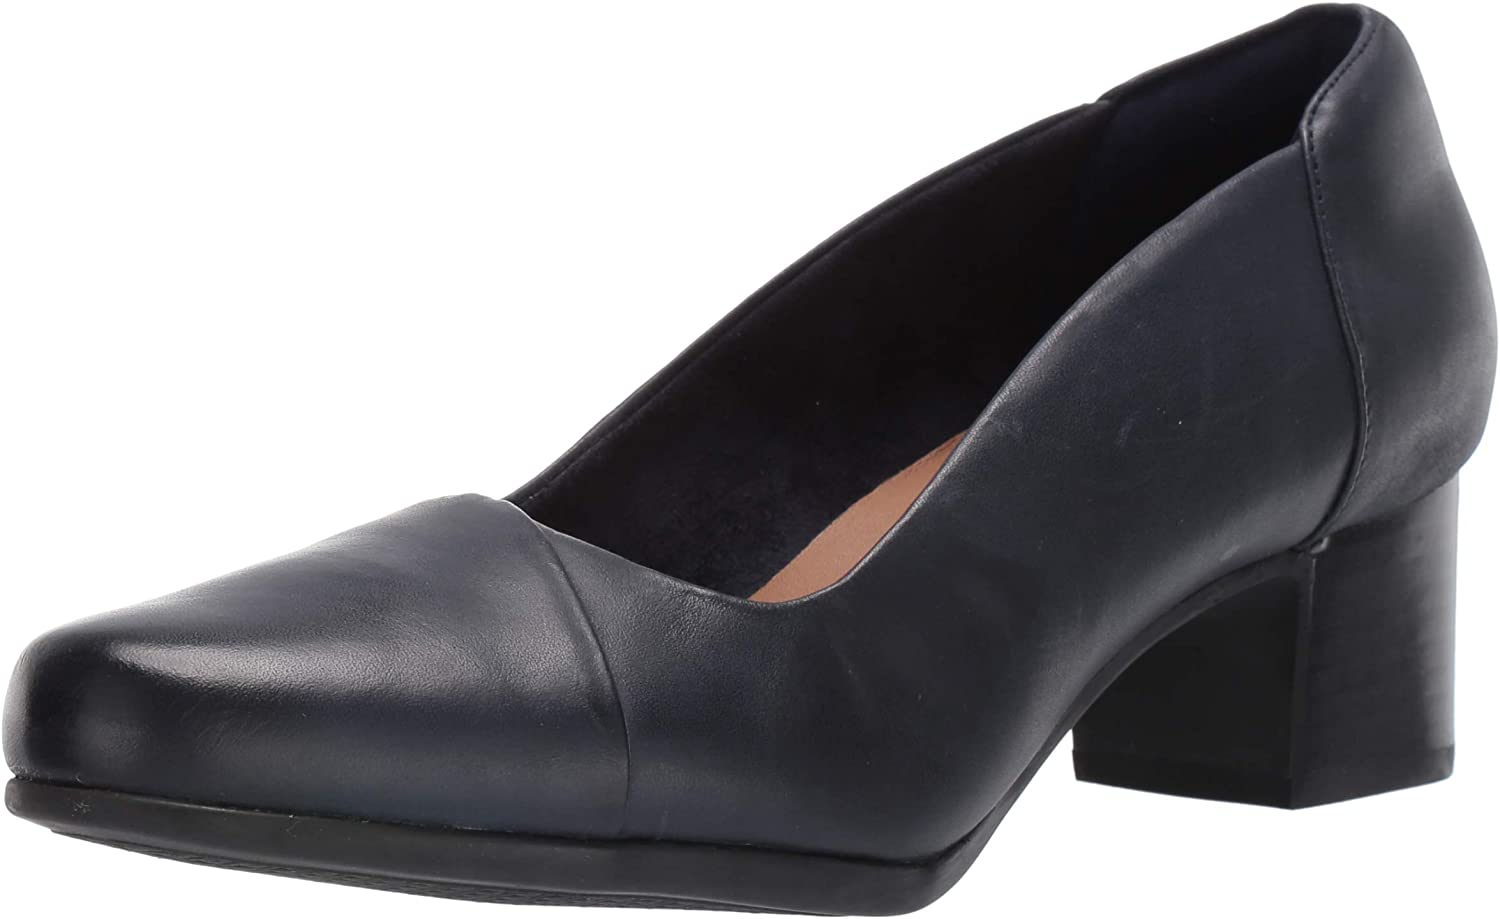 Clarks Women's Un Step Damson Pump 67% Max 68% OFF OFF of fixed price